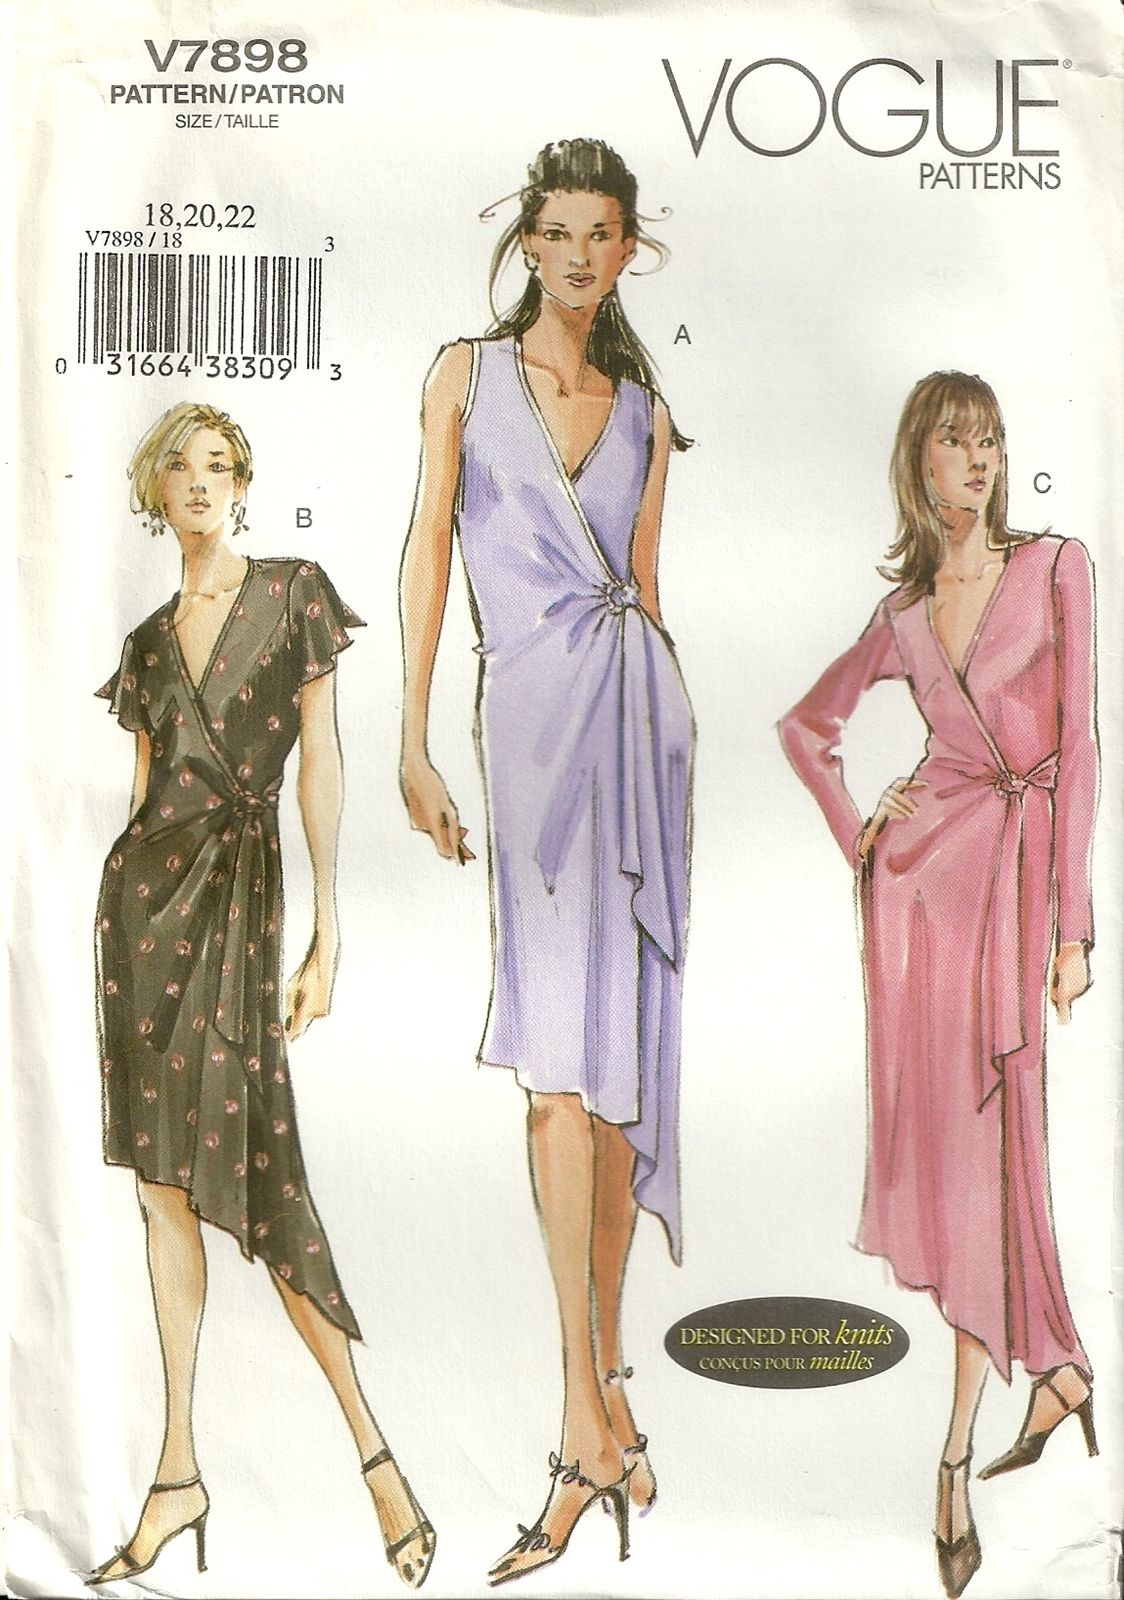 Cly Patterns Vogue 7898 Womens Slinky Wrap Dress Sewing Pattern Size 18 20 22 Plus Y